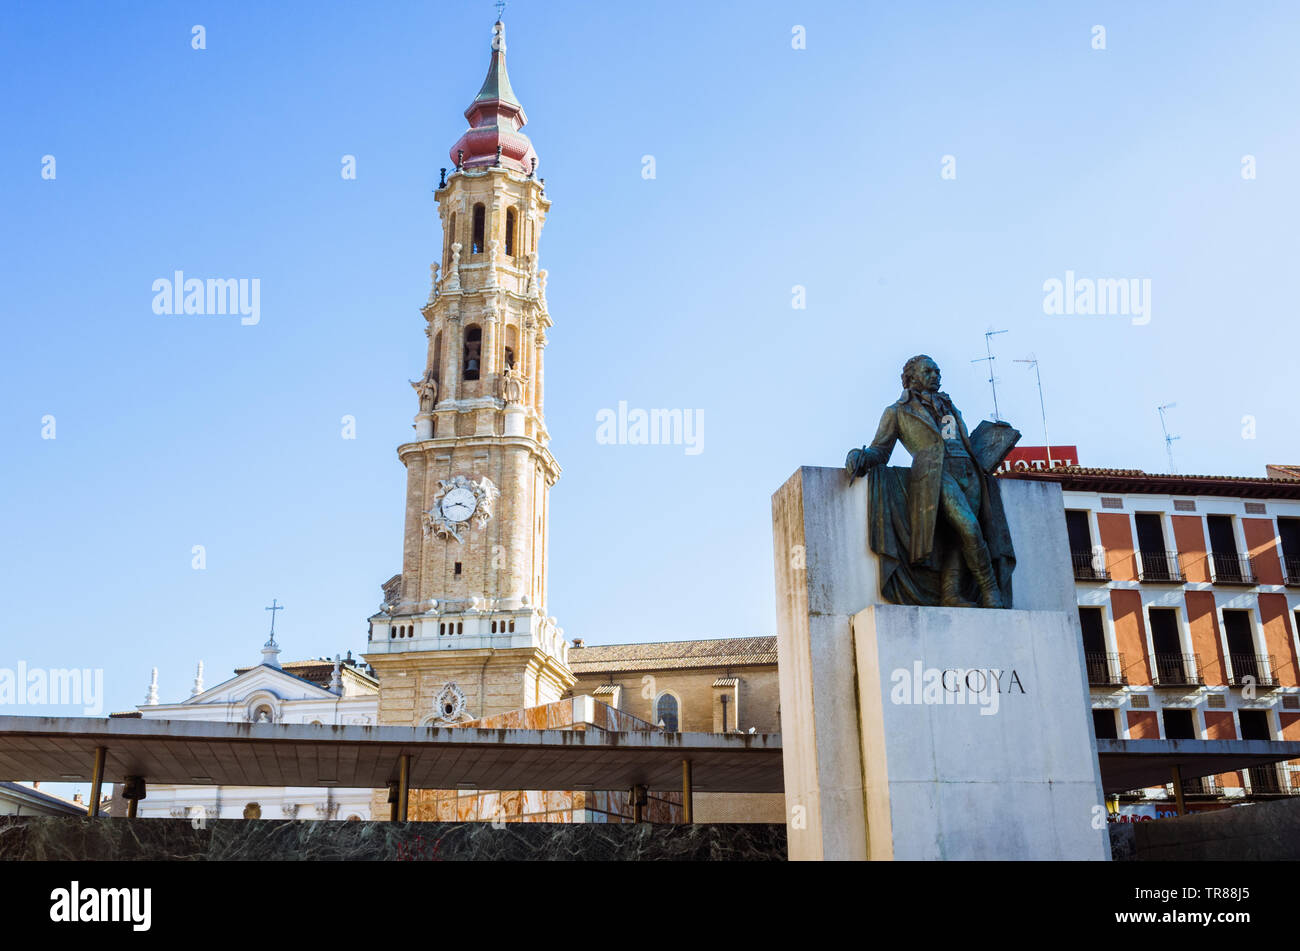 Zaragoza, Aragon, Spain : Bell tower of La Seo cathedral of the Savior and Francisco de Goya monument at the Plaza del Pilar square. - Stock Image